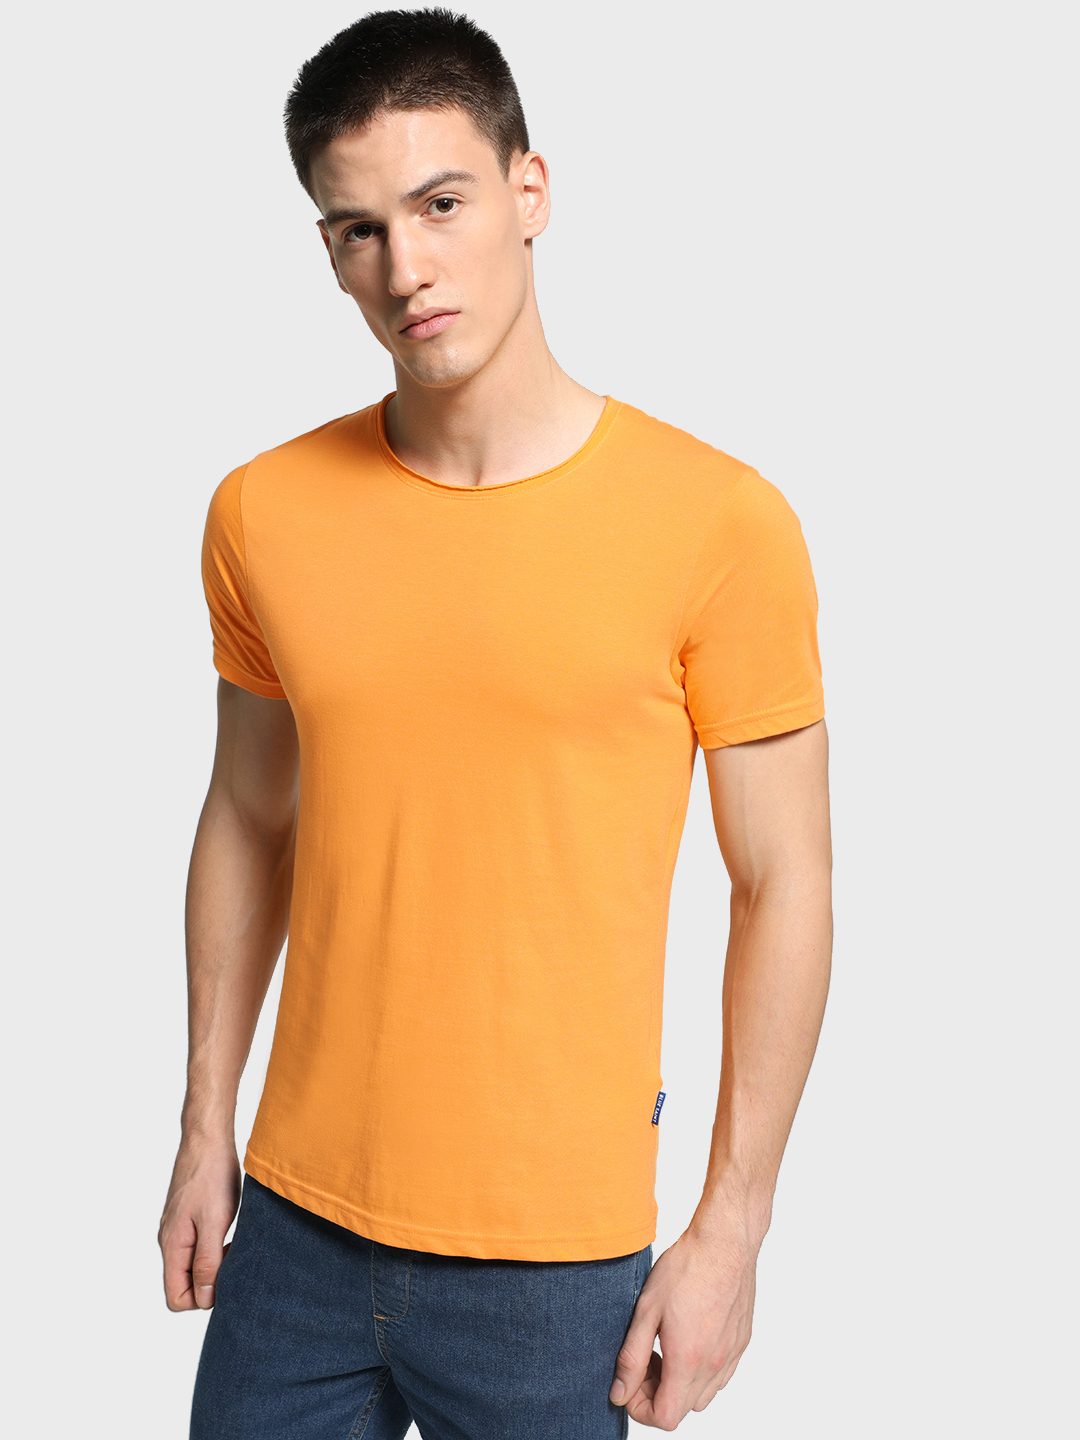 Blue Saint Yellow Basic Round Neck T-Shirt 1